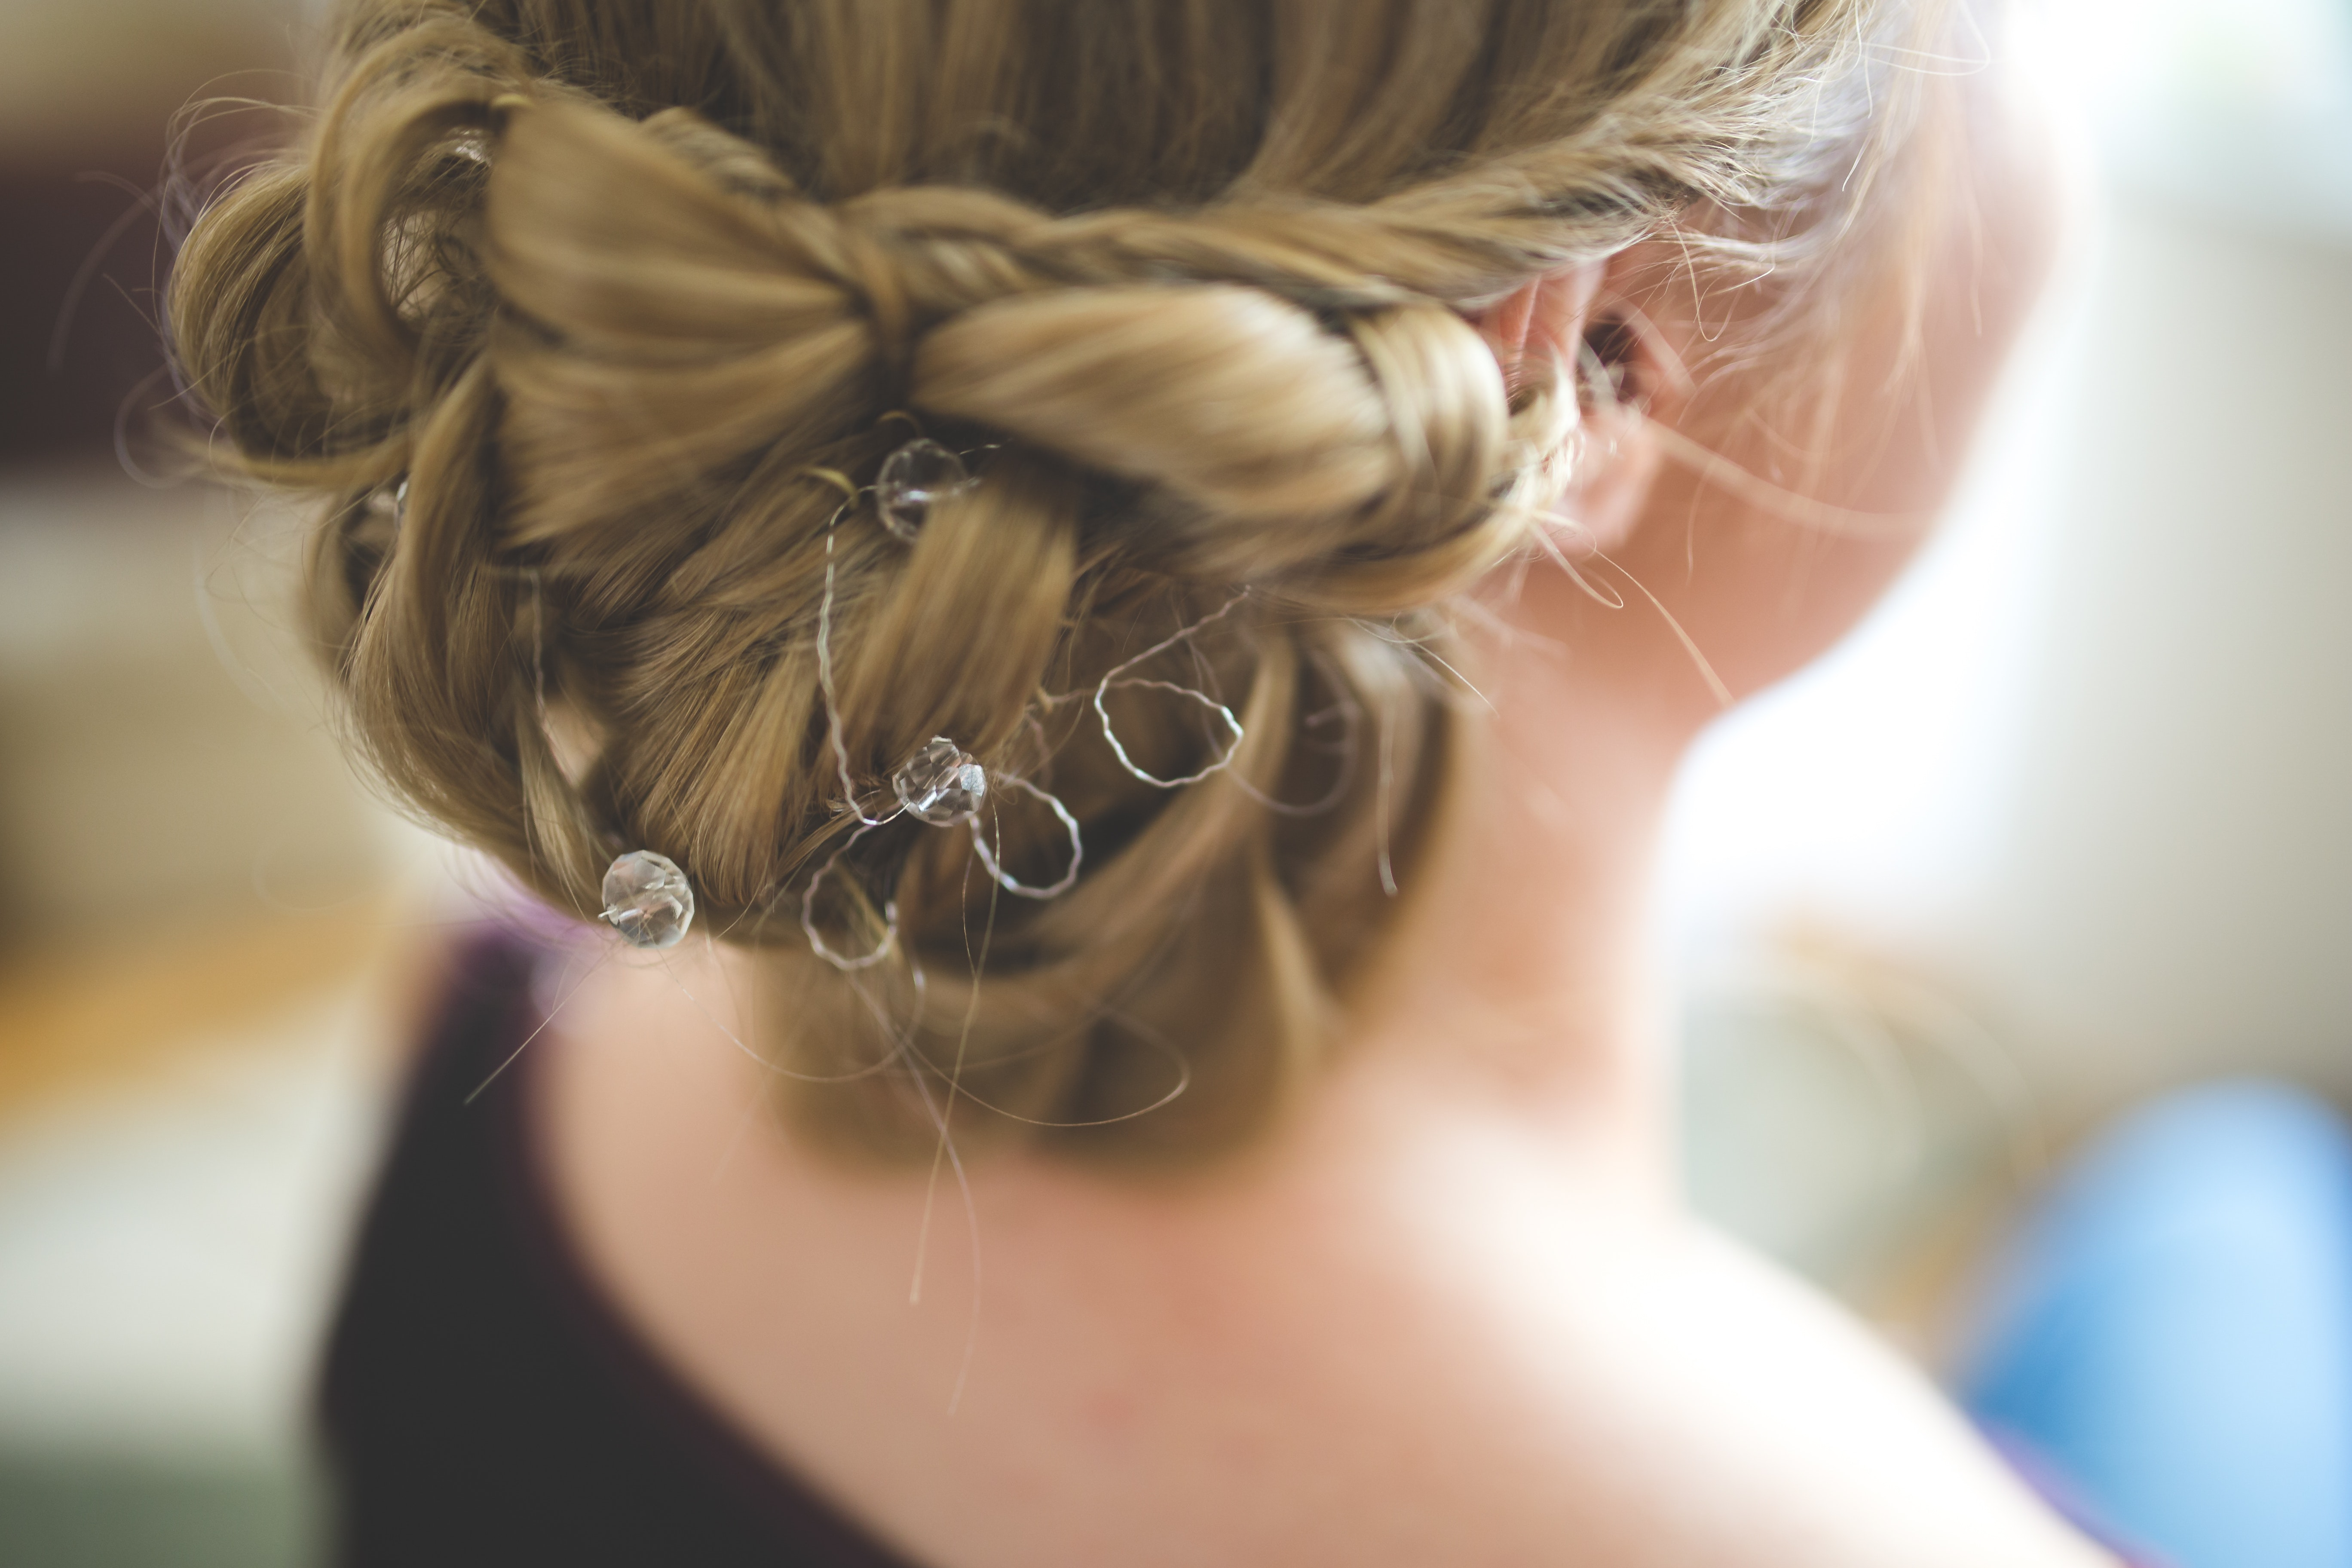 Woman hair style. Sell hair beauty and wellness services online.